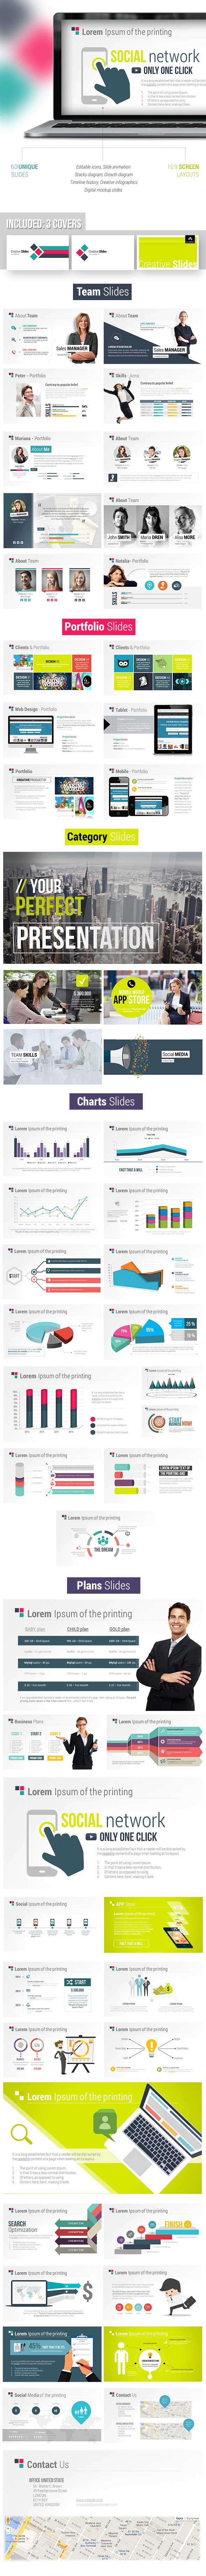 Fresh Digital Slides - Creative Powerpoint Templat - Creative PowerPoint Templates